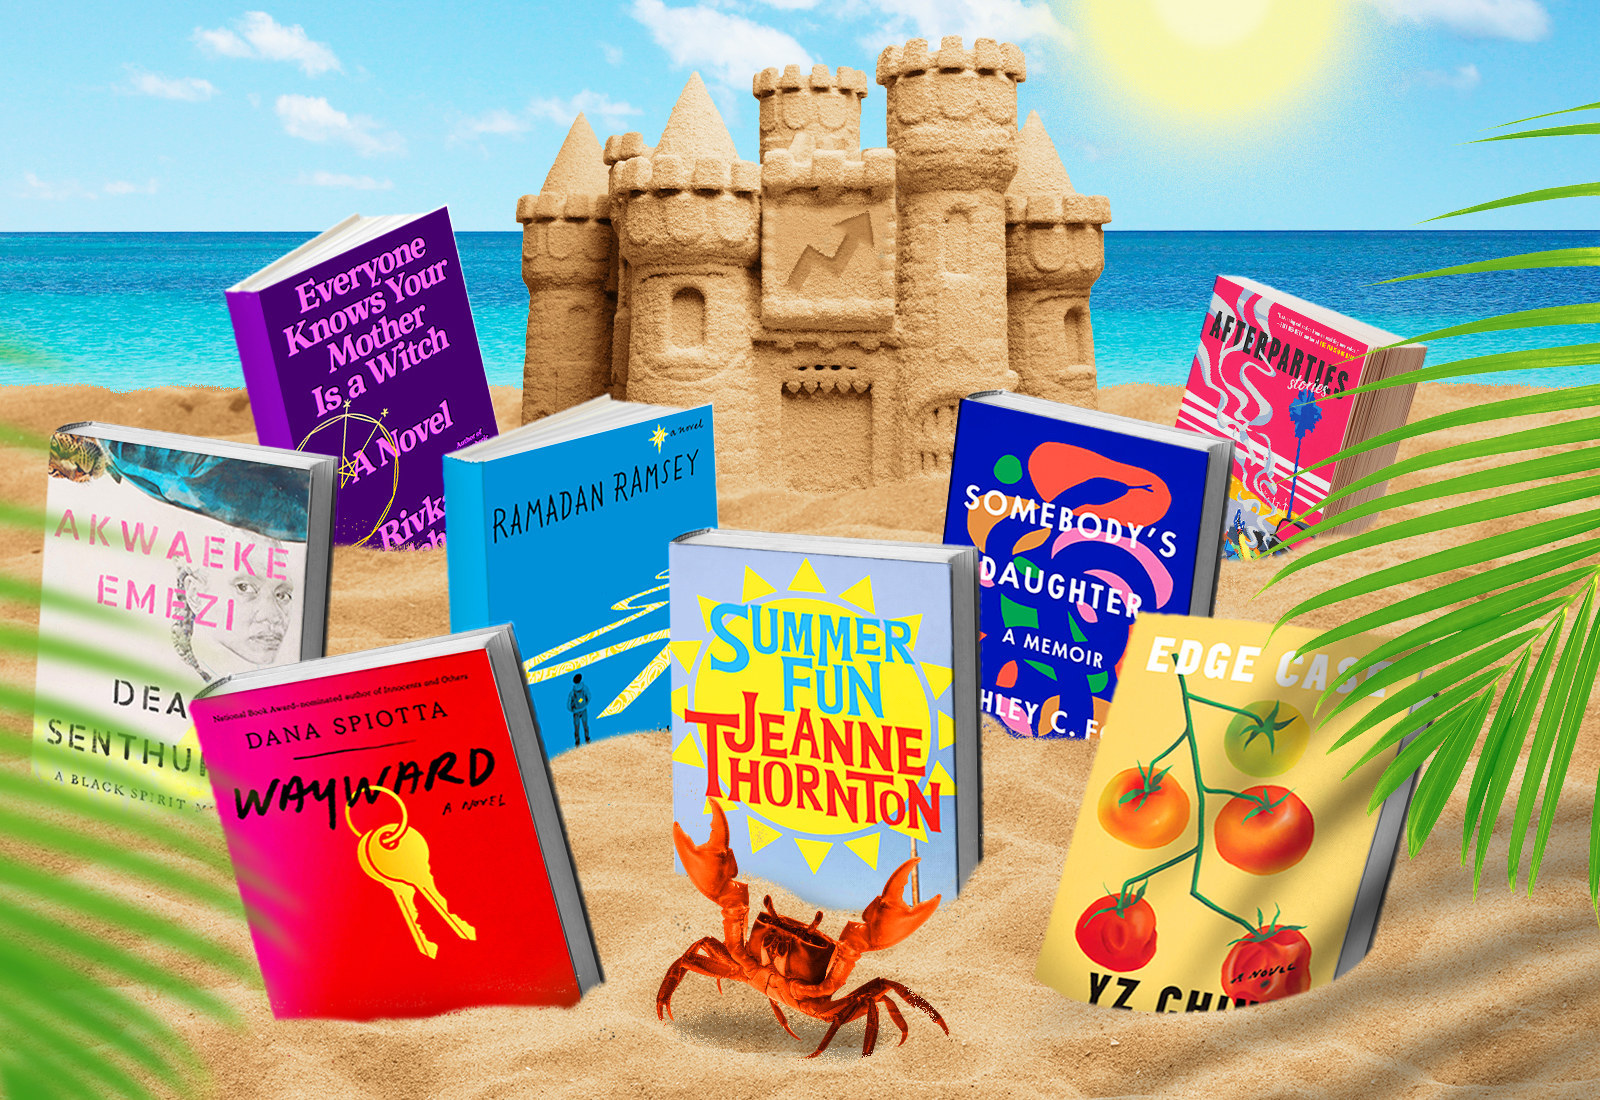 A digital illustration of a sunny beach with a sandcastle featuring the BuzzFeed arrow logo in the center. In front of the sandcastle, eight books are propped up in the sand. At the very front is a little crab.